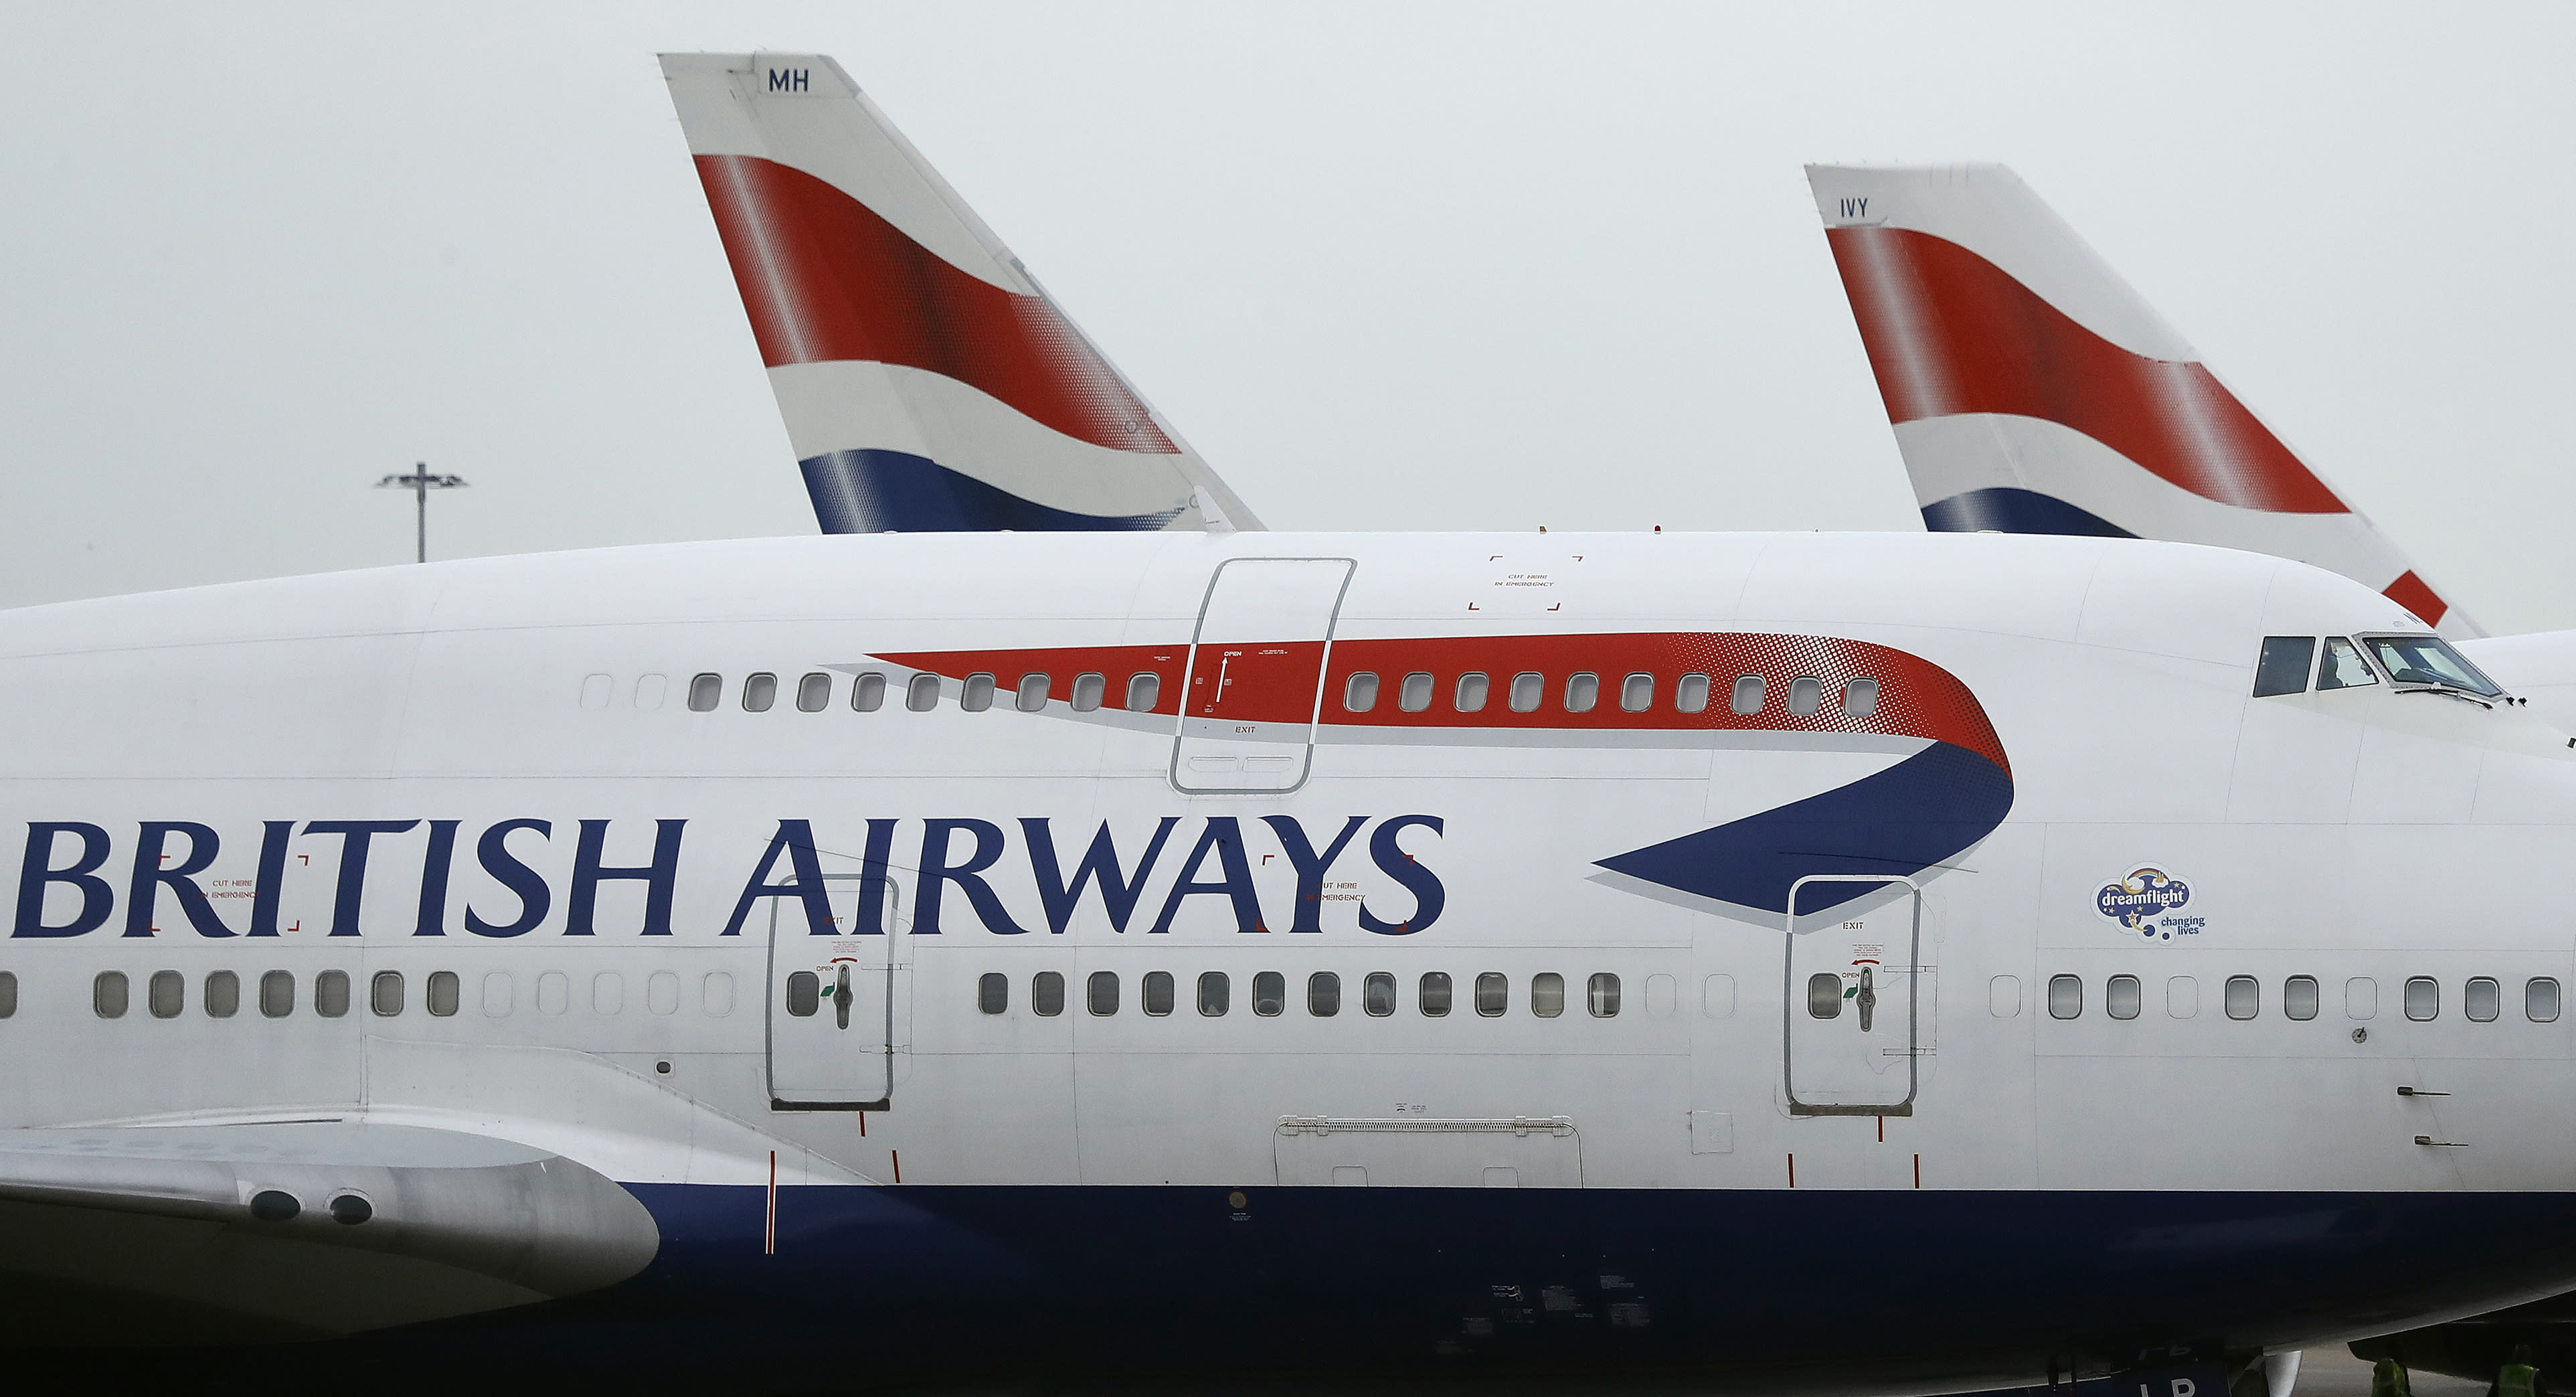 Lufthansa, British Airways suddenly suspend all flights to Cairo as 'precaution'